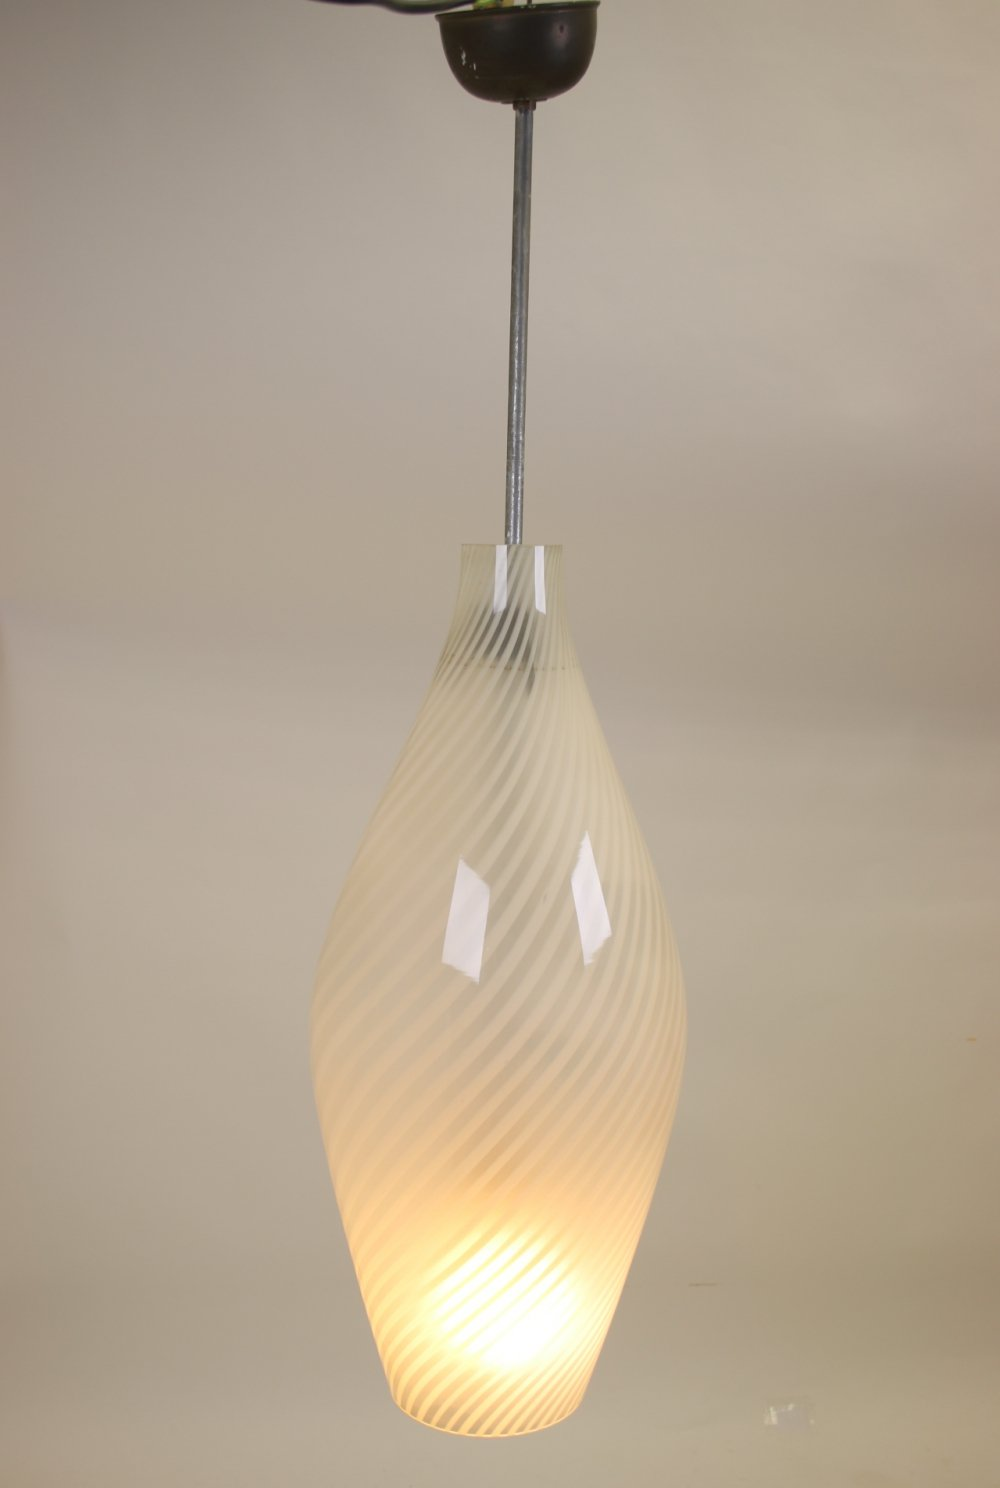 Murano glass spinning top pendant lamp, Italy 1960s